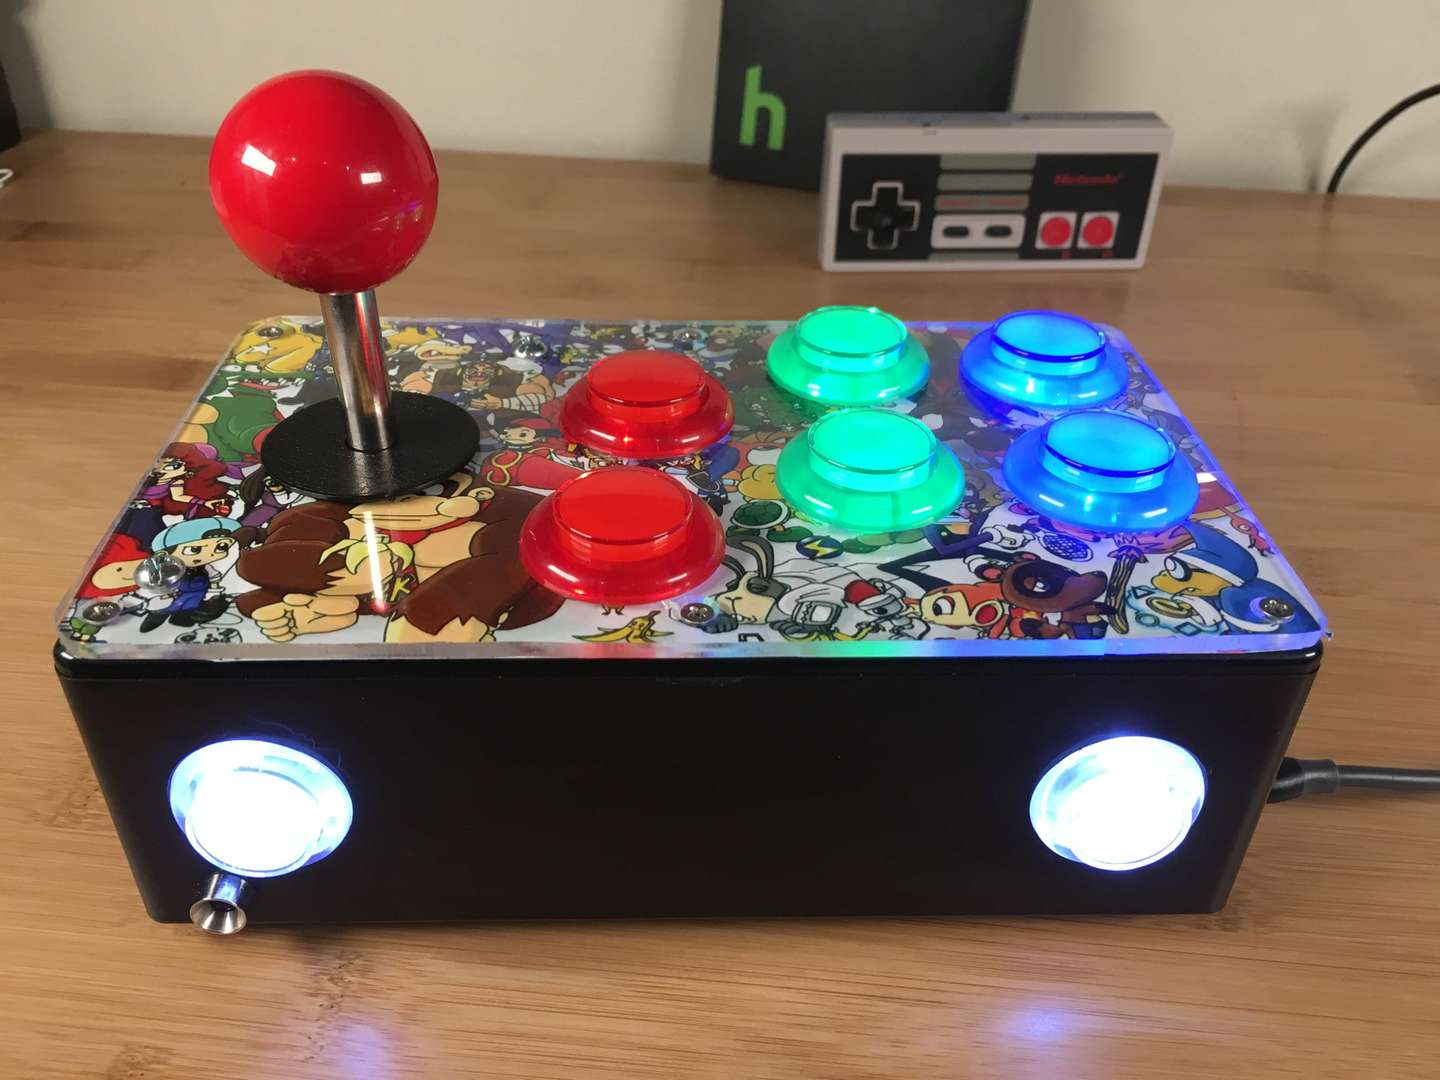 Completed DIY Raspberry Pi arcade joystick